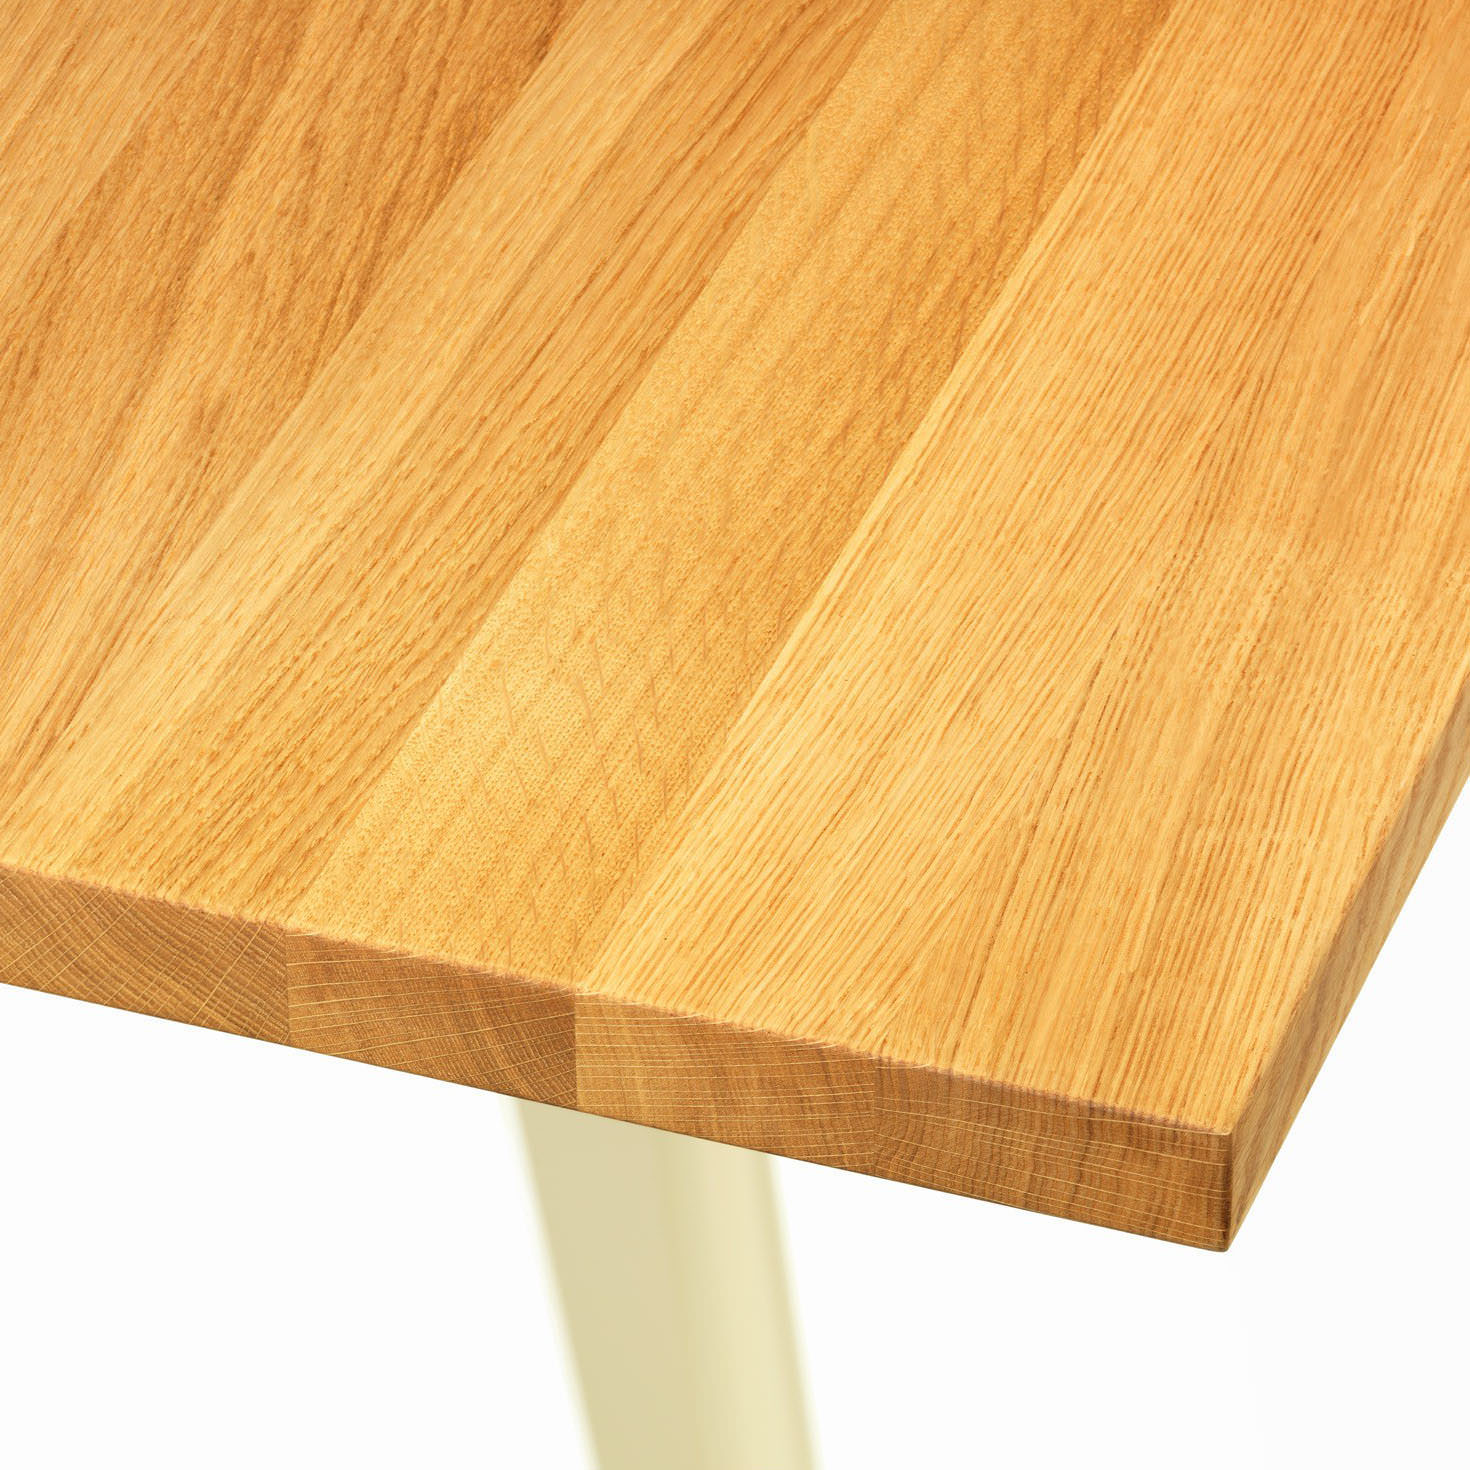 Vitra Em Table By Jean Prouve In Solid Natural Oak Oak Em Tables